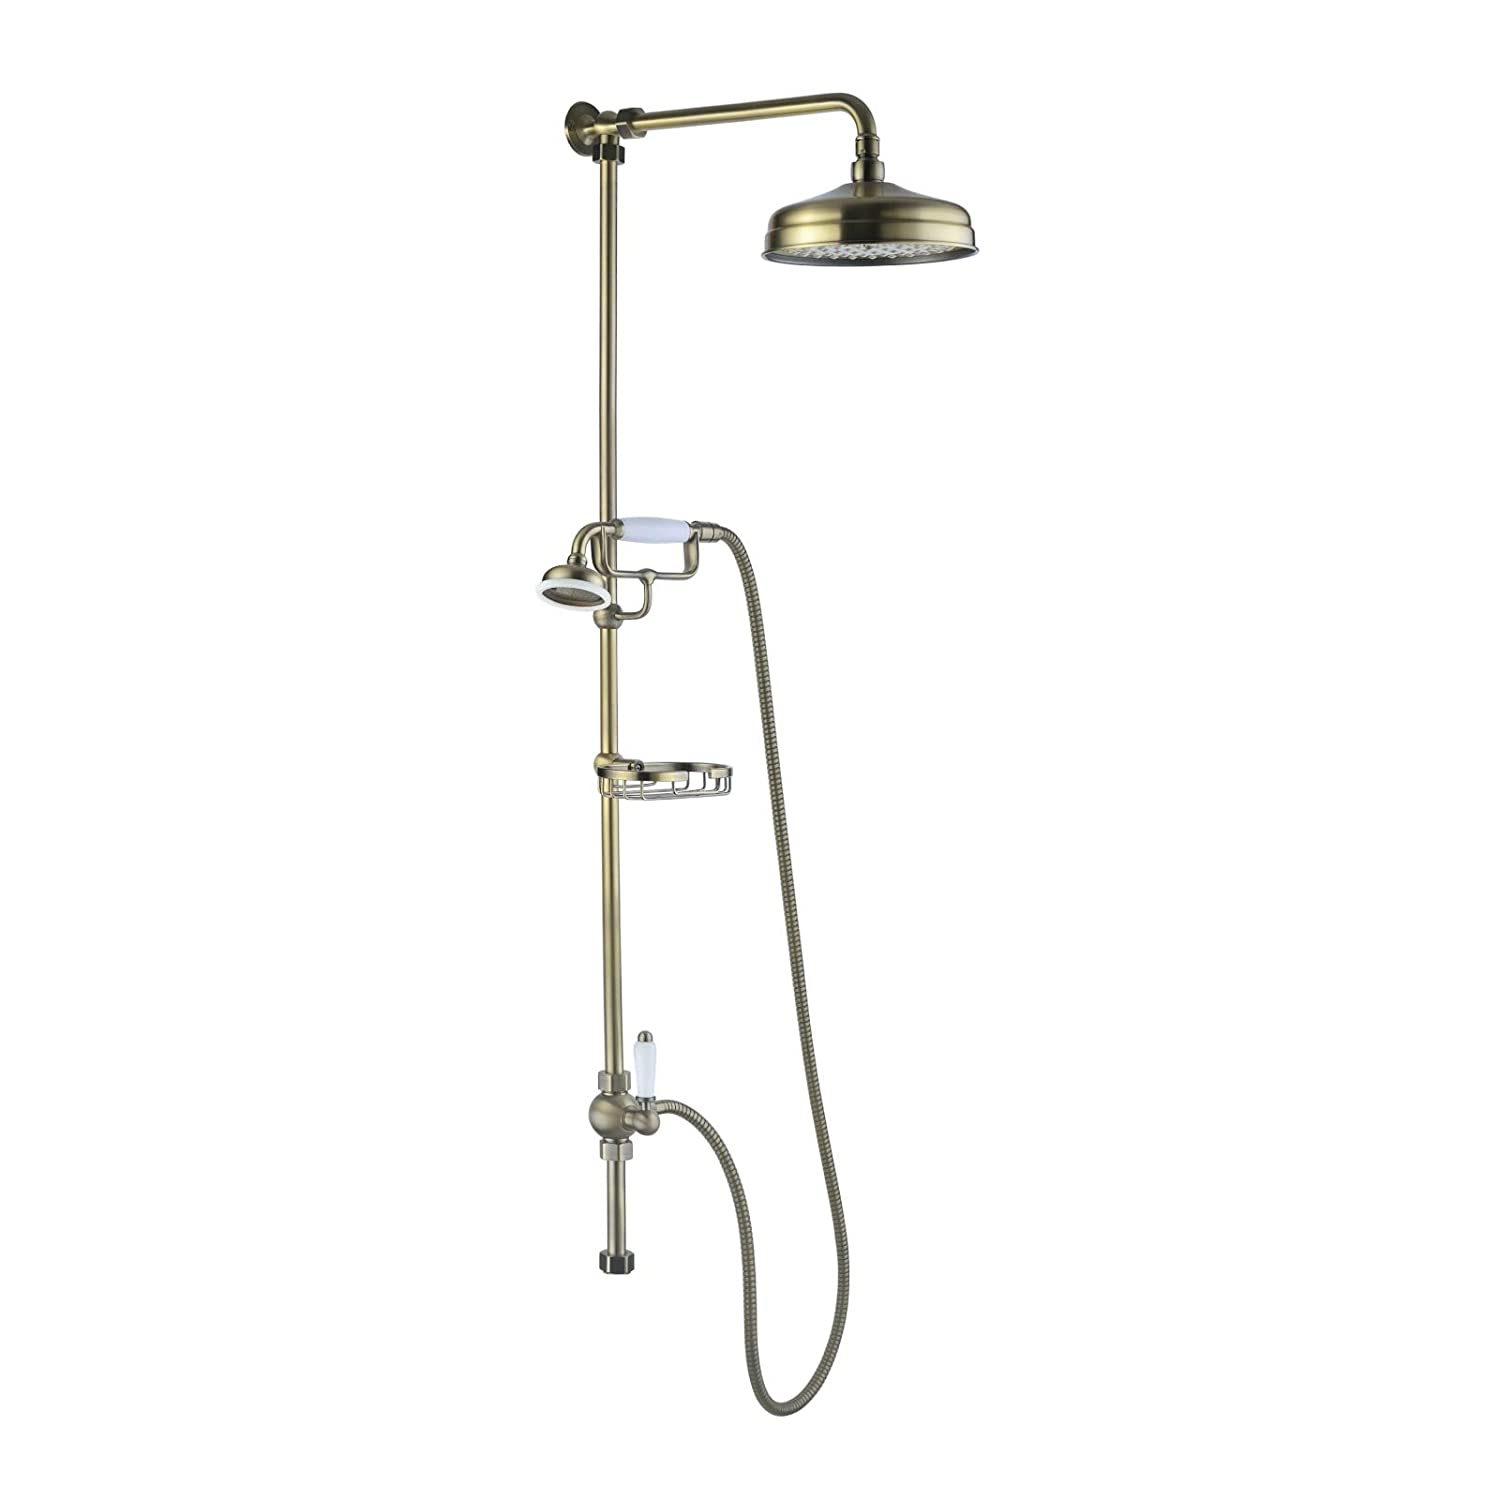 Victoria traditional shower riser rail kit 2 outlet soap dish ...